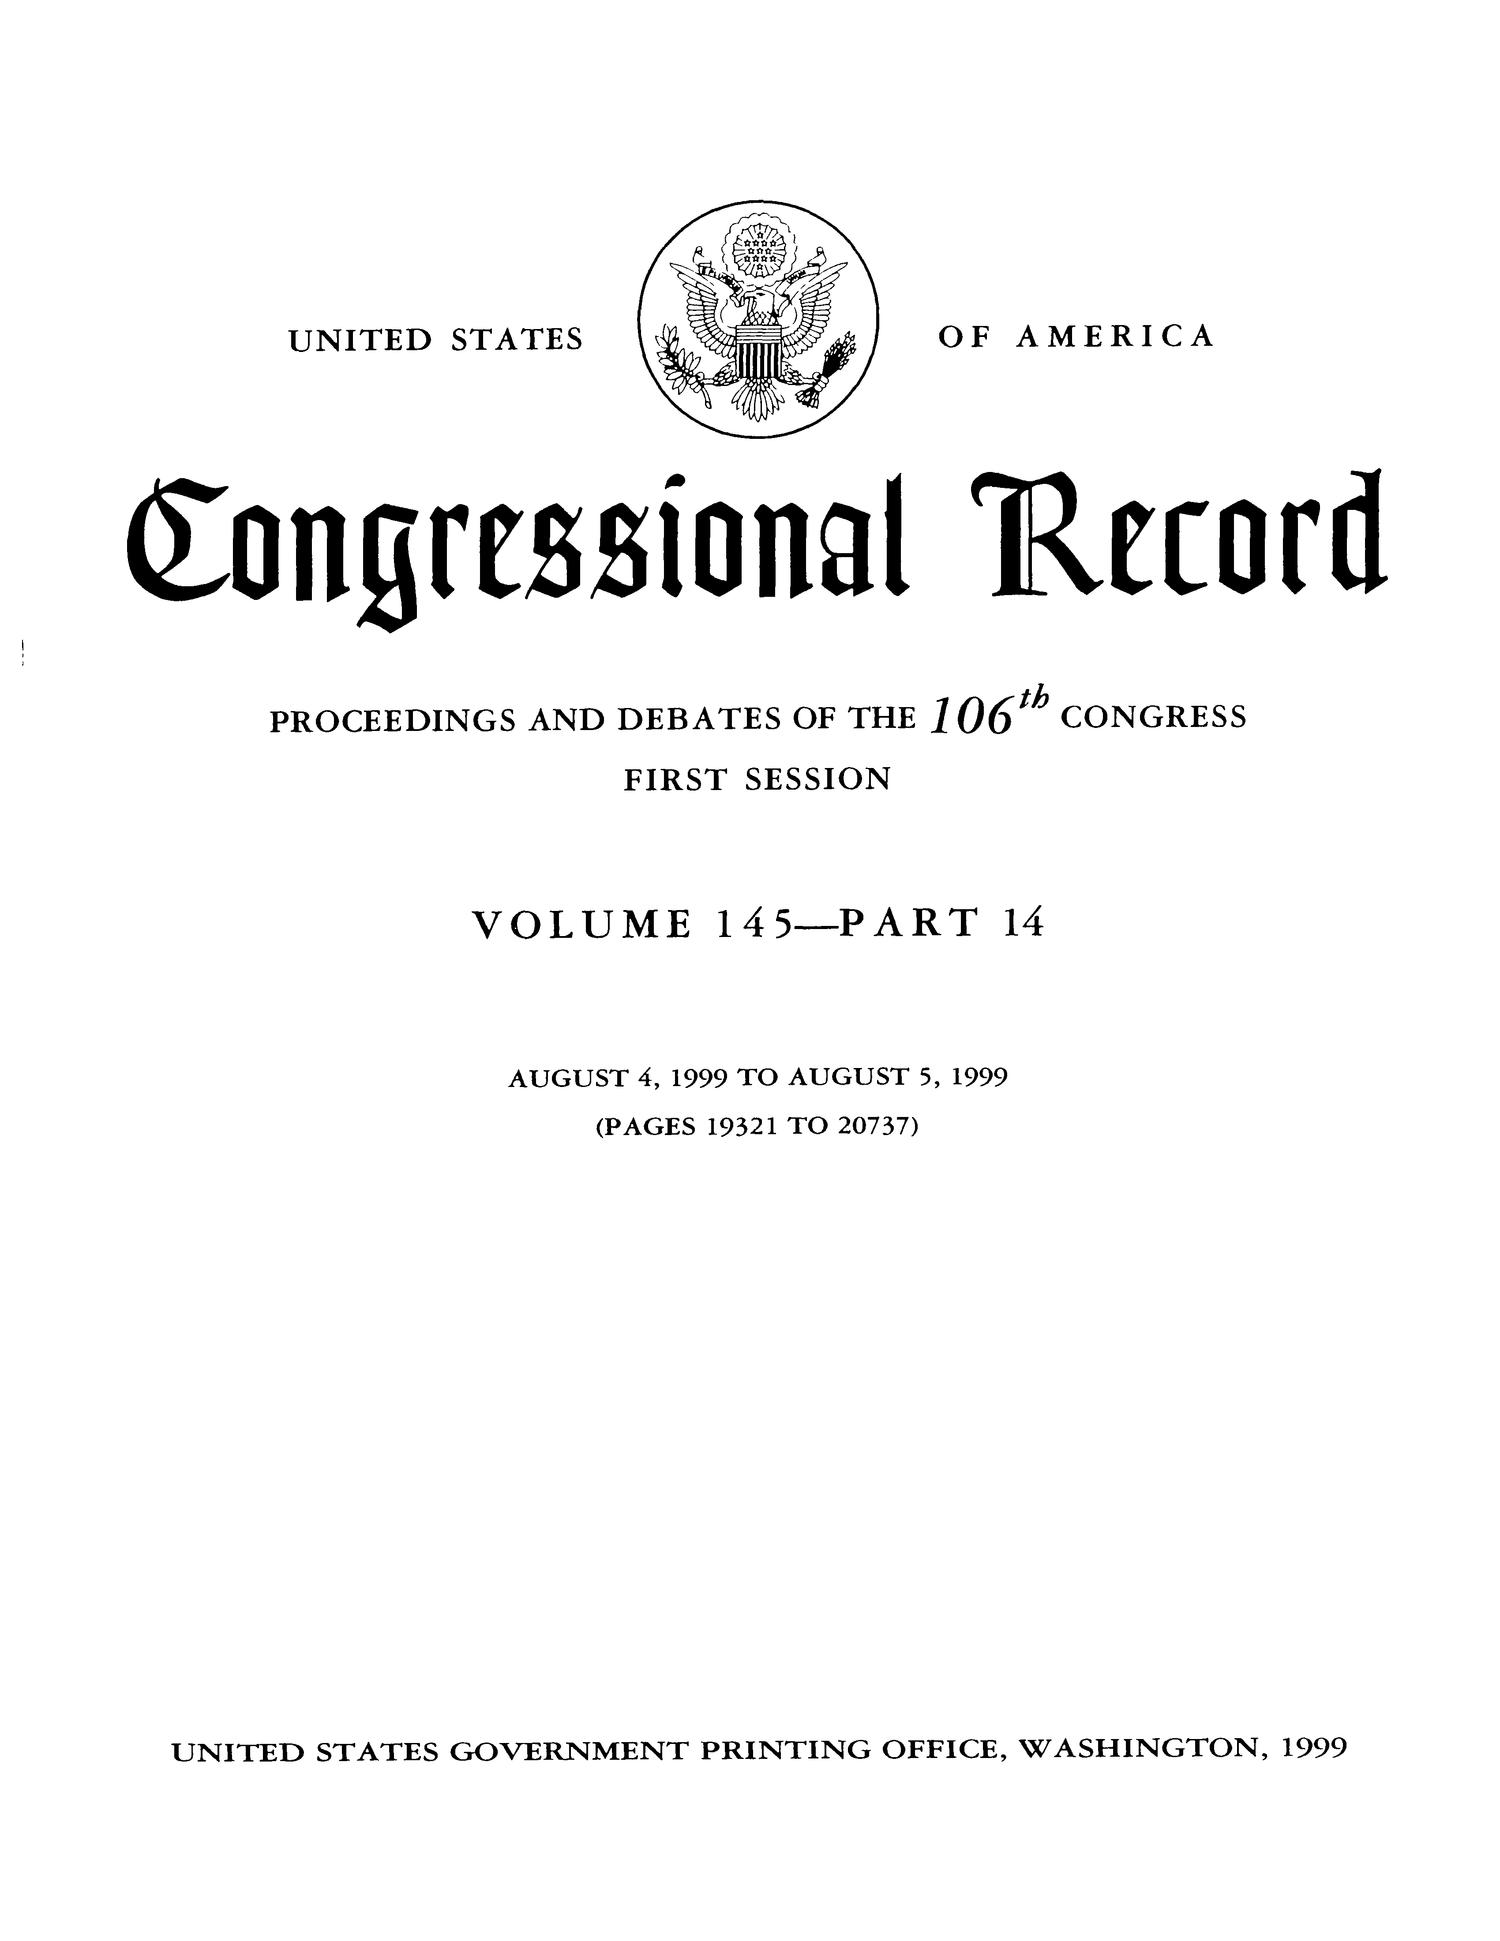 Congressional Record: Proceedings and Debates of the 106th Congress, First Session, Volume 145, Part 14                                                                                                      Title Page